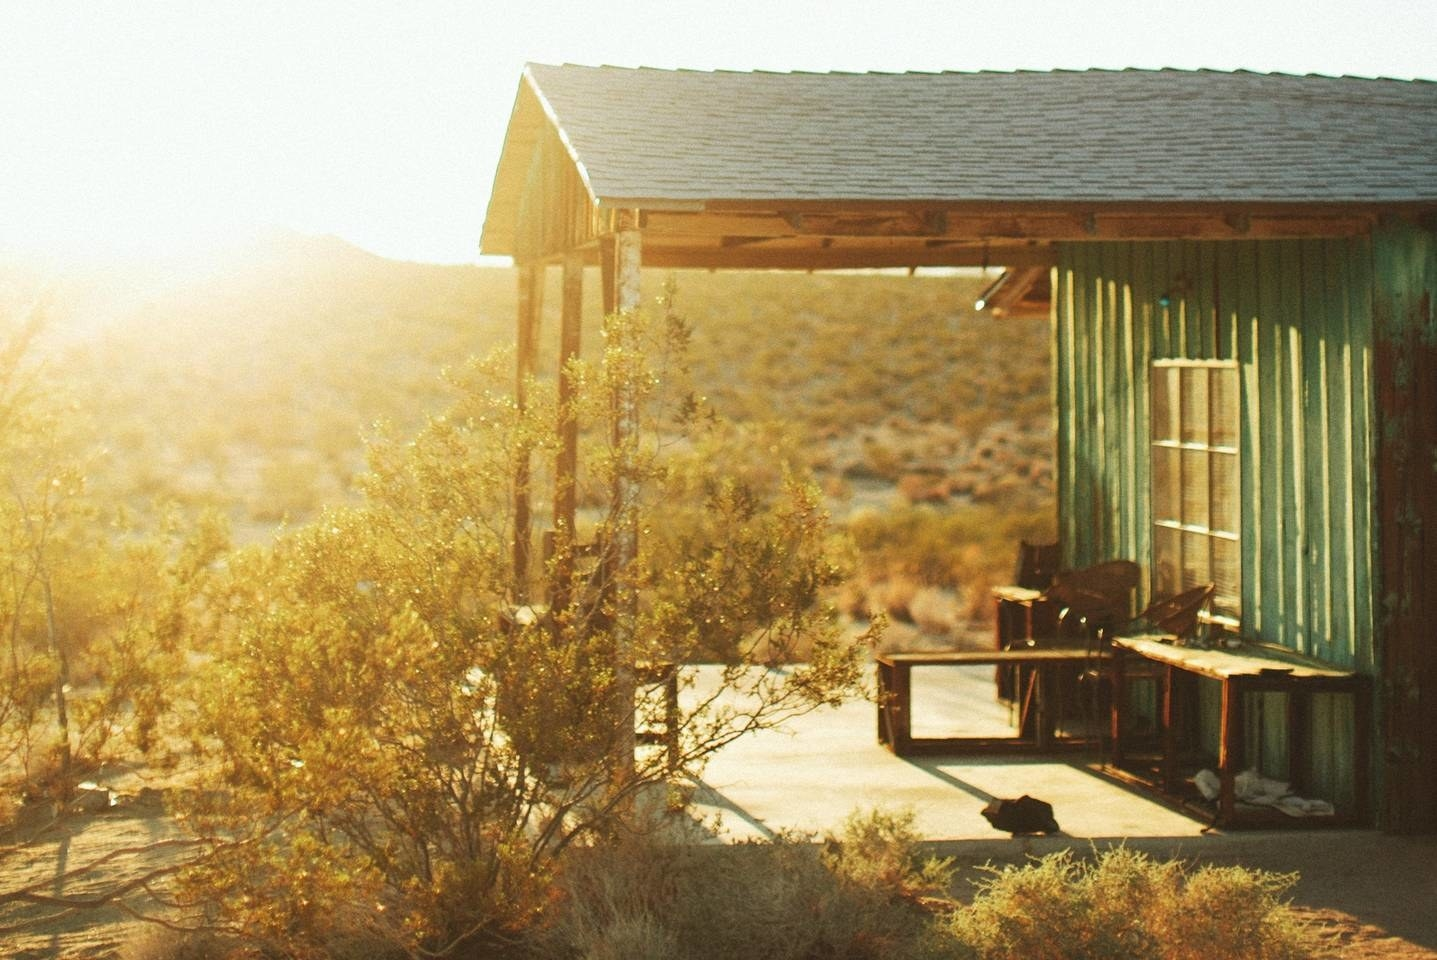 If you've ever dreamt of spending a night beneath the stars in Joshua Tree desert, now's your chance to make it a reality. See the listing here.